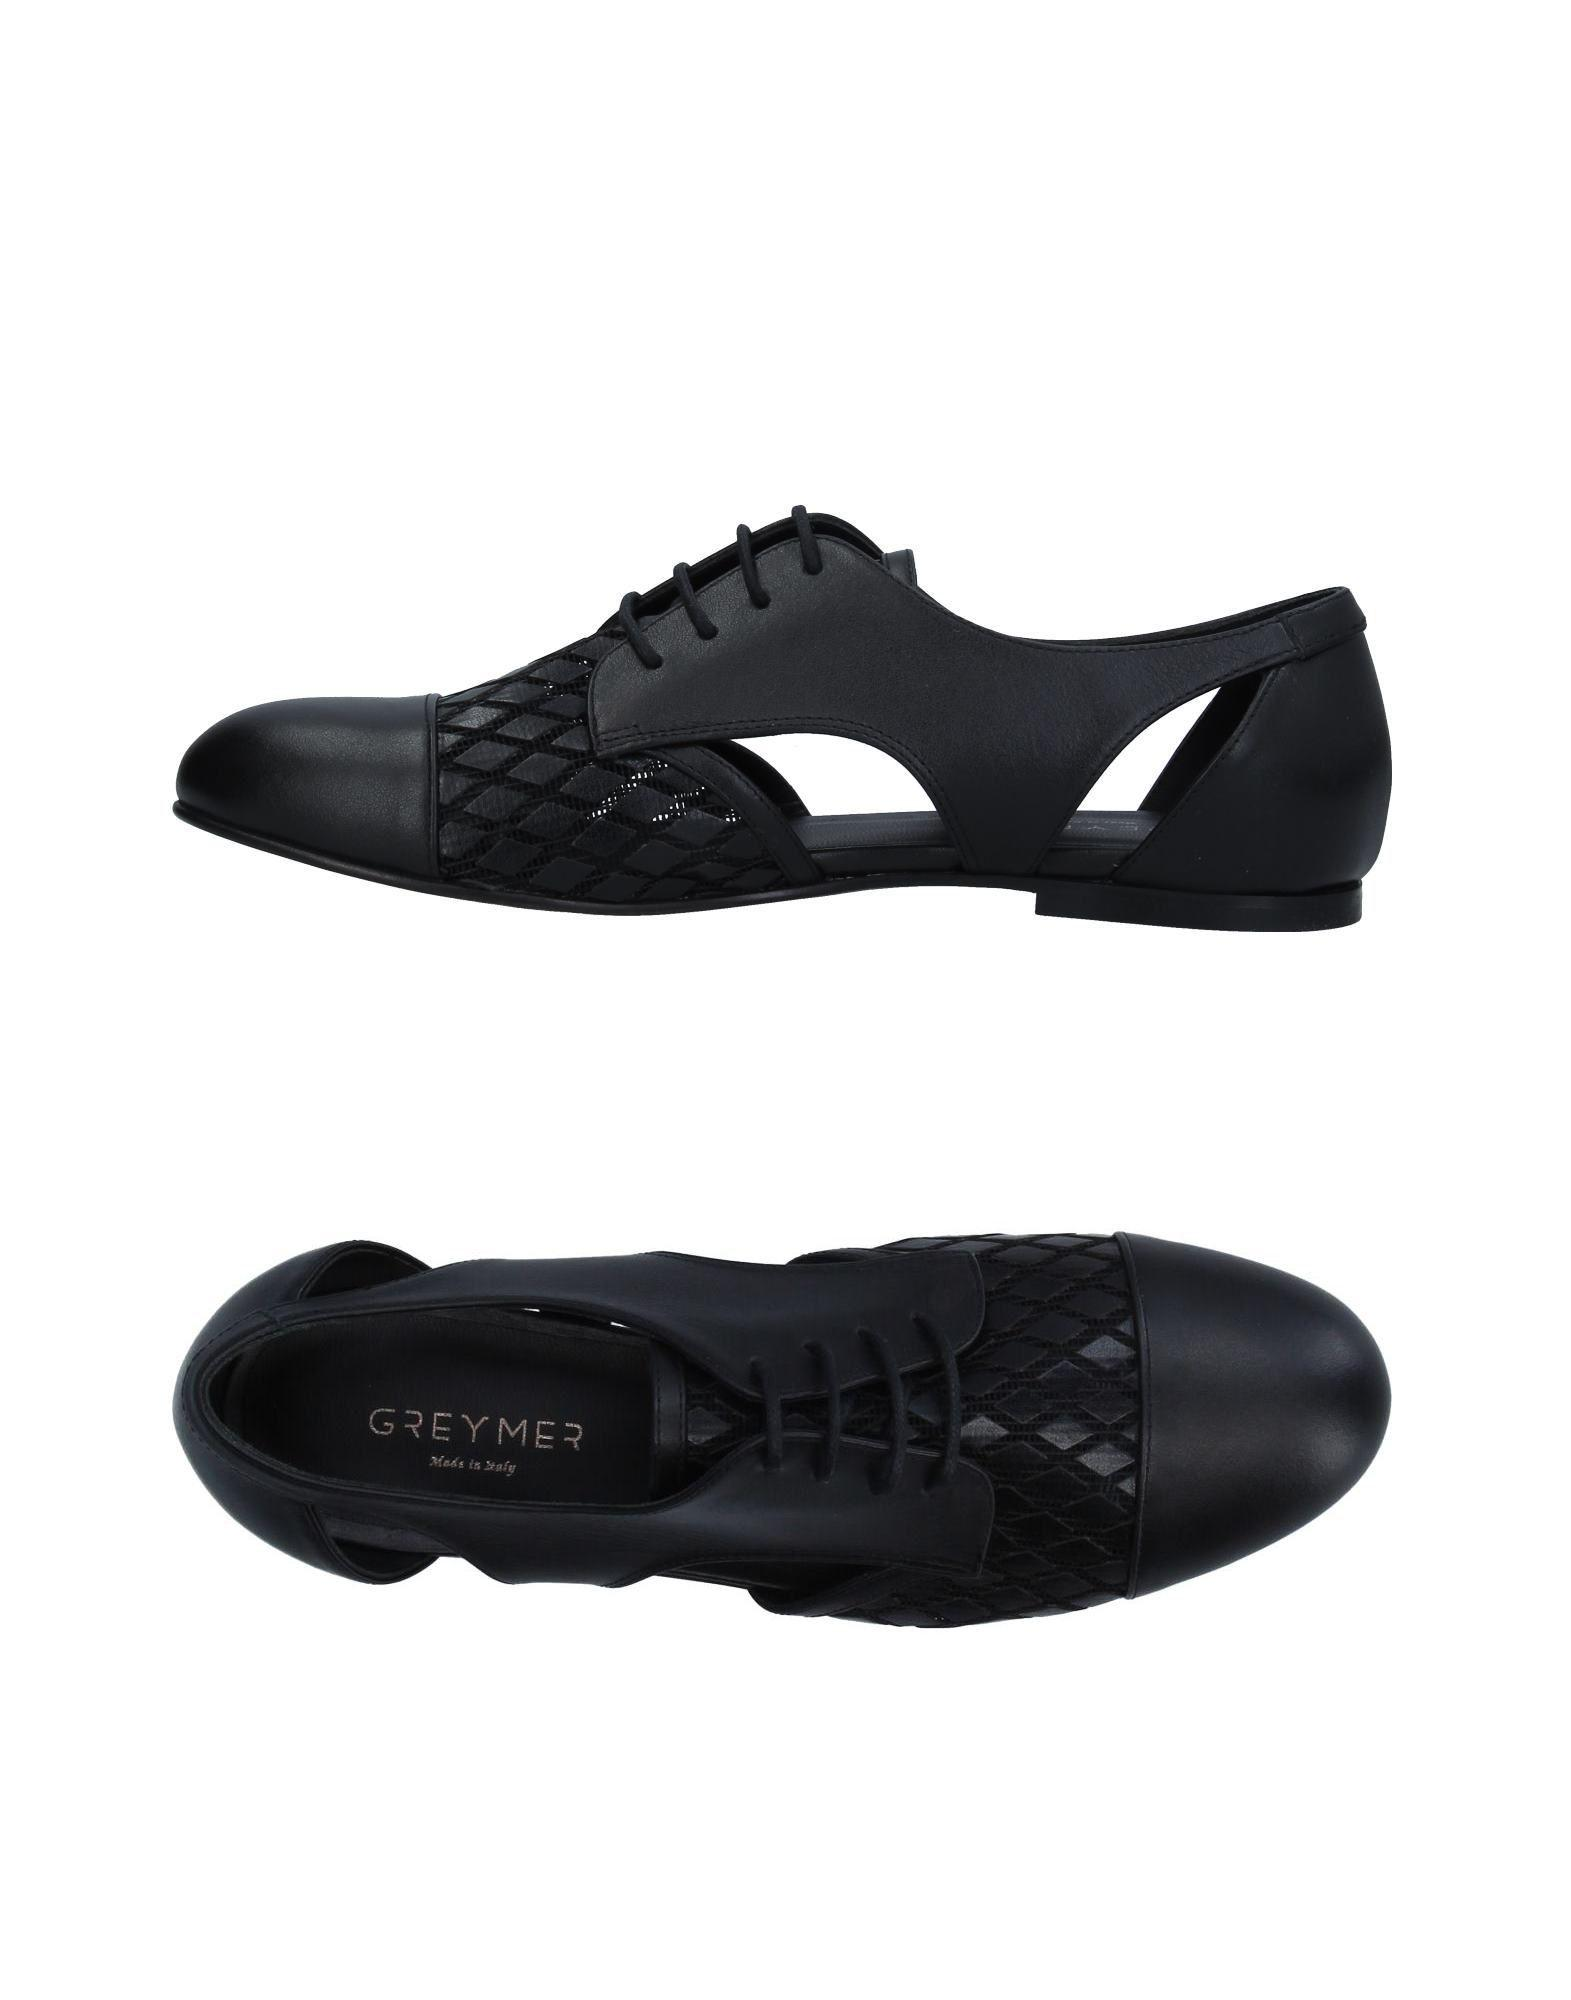 FOOTWEAR - Lace-up shoes Greymer i0jDhB